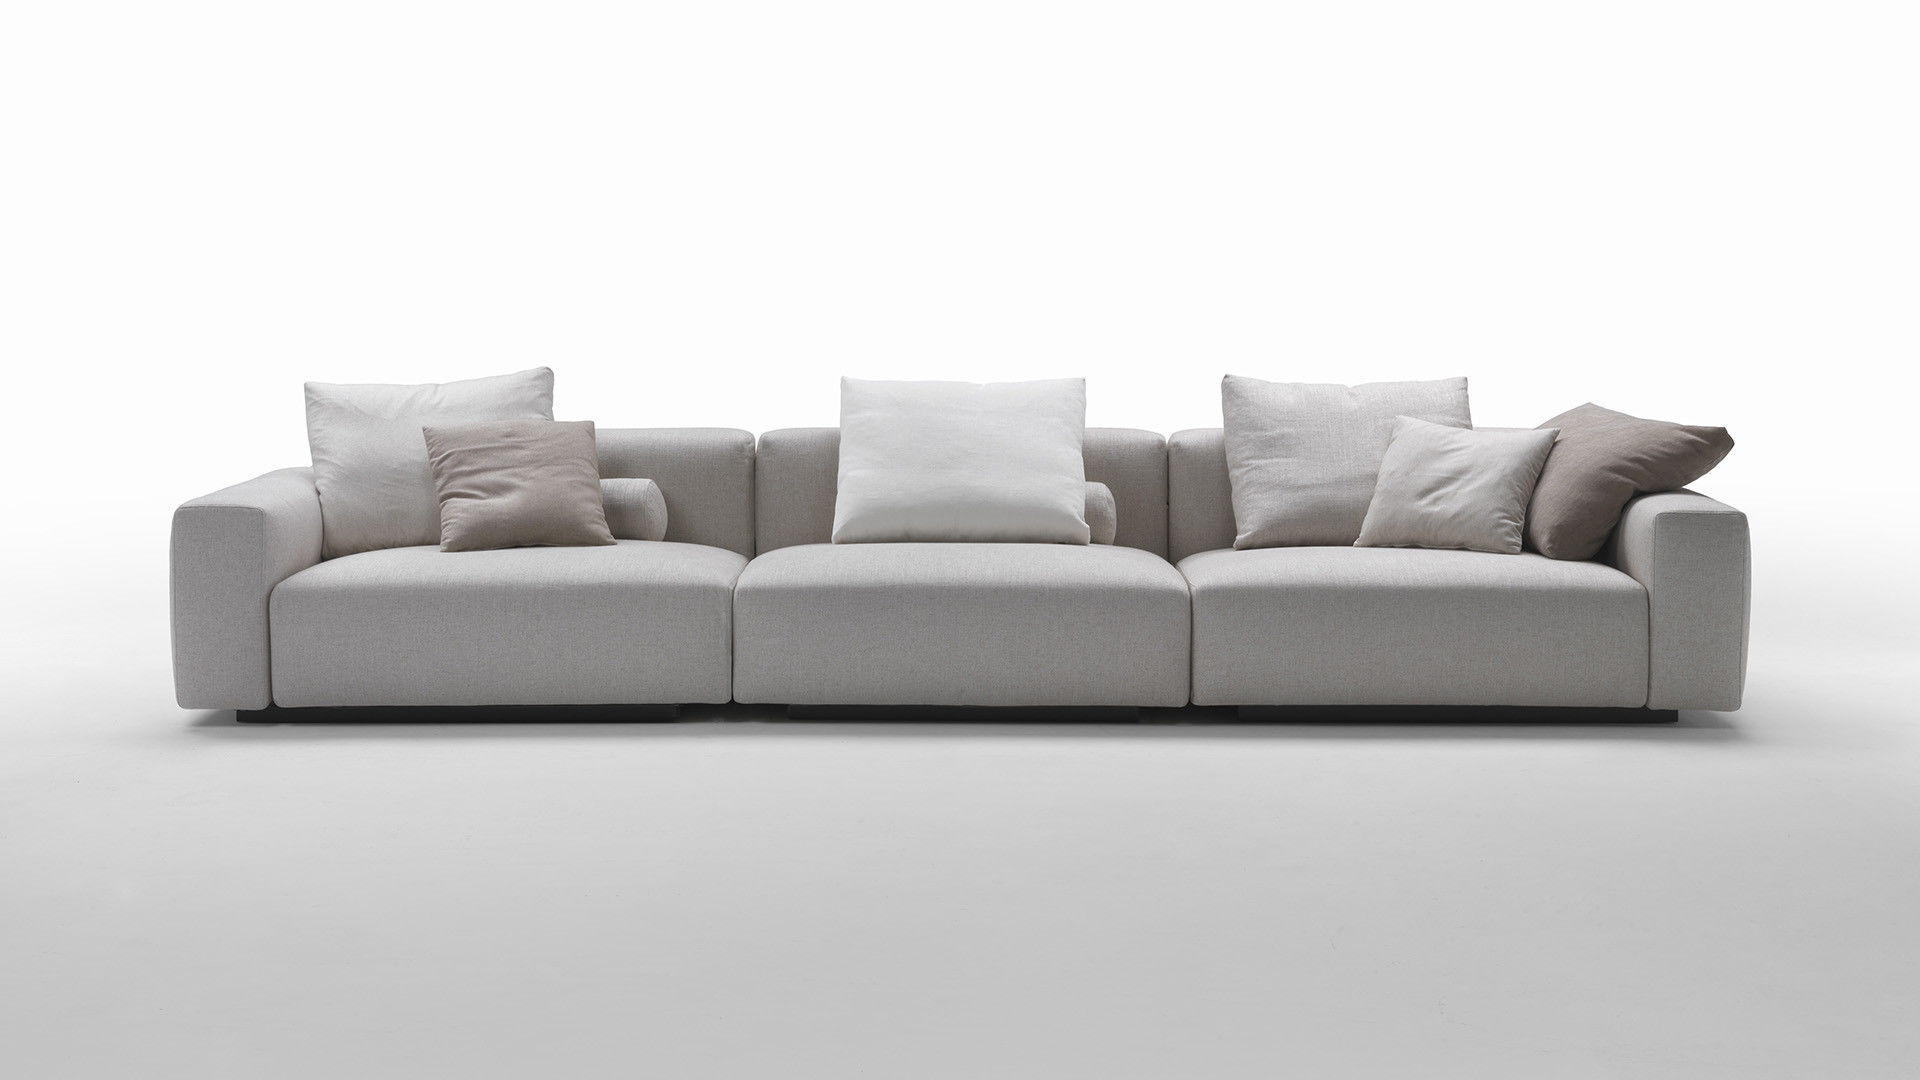 Modular Sofa Contemporary Fabric Leather Lario 88